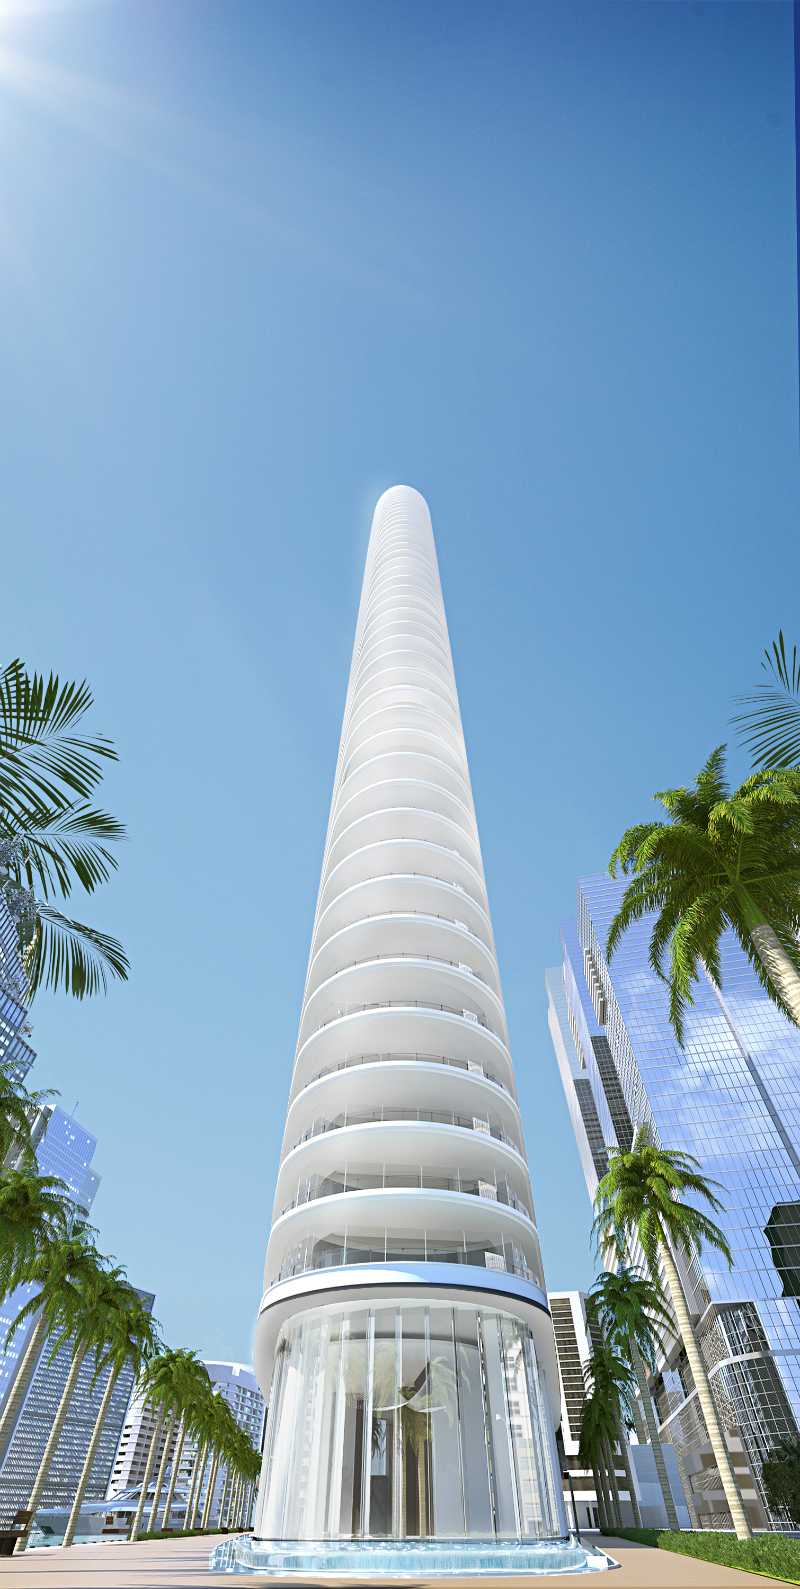 aston martin residences The Towering Aston Martin Residences in Miami Set to Be Built by 2021 The Towering Aston Martin Residences in Miami Set to Be Built by 2021 18